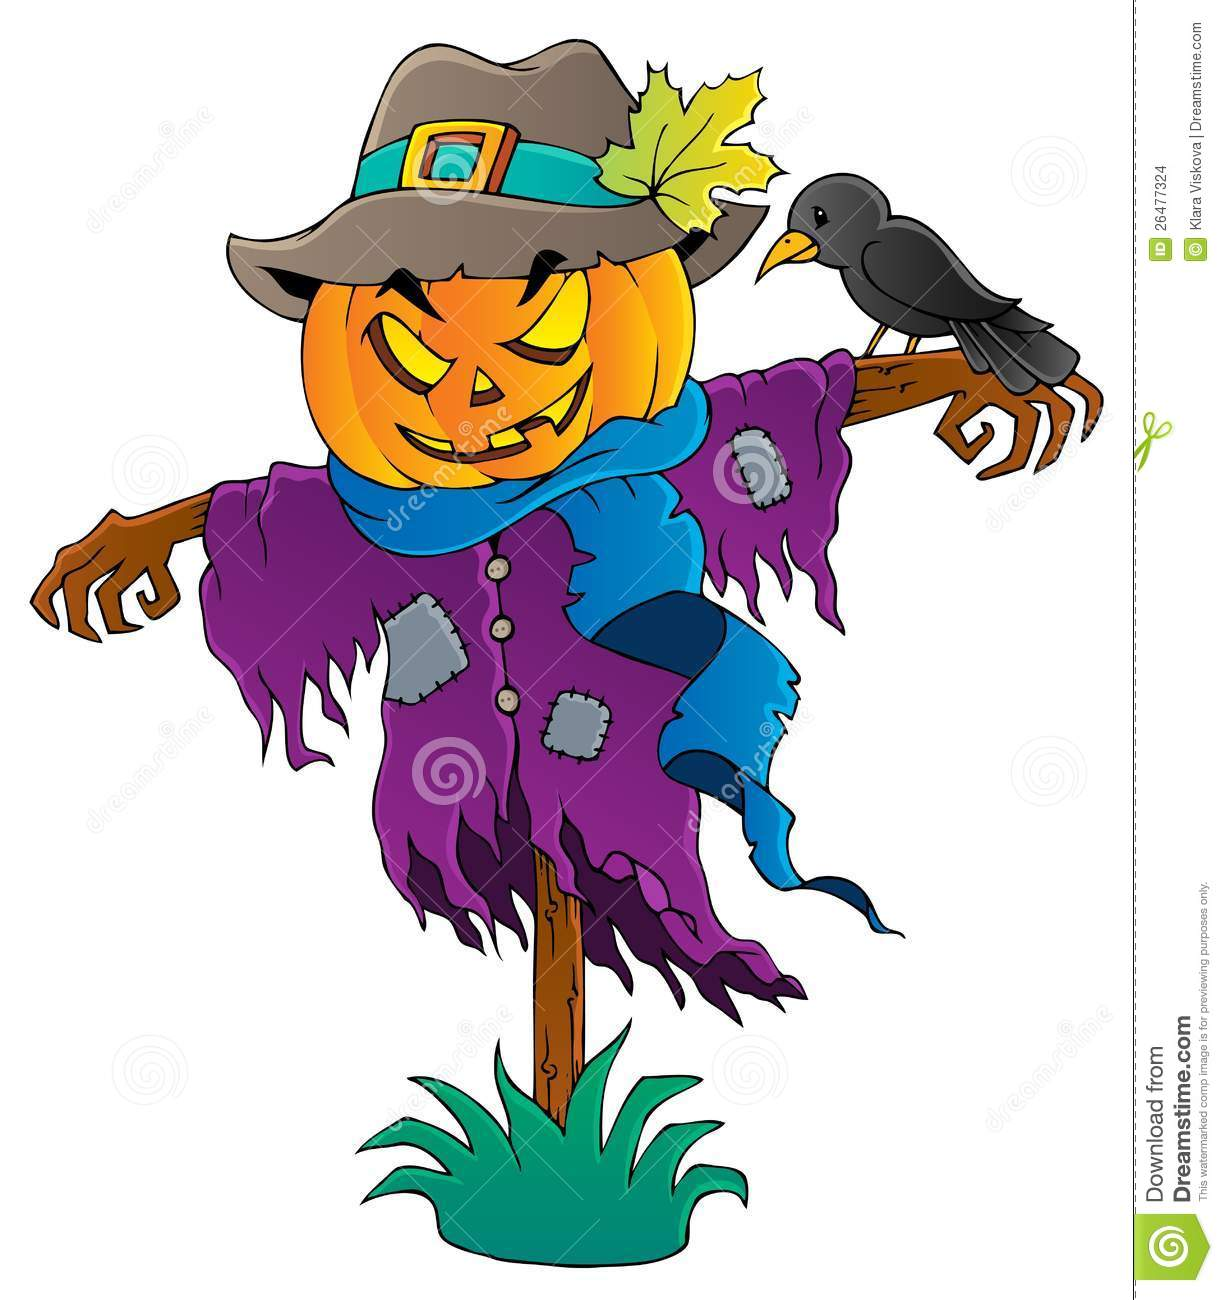 halloween scarecrow theme image 1 stock vector image crown clipart black and white crow clip art images